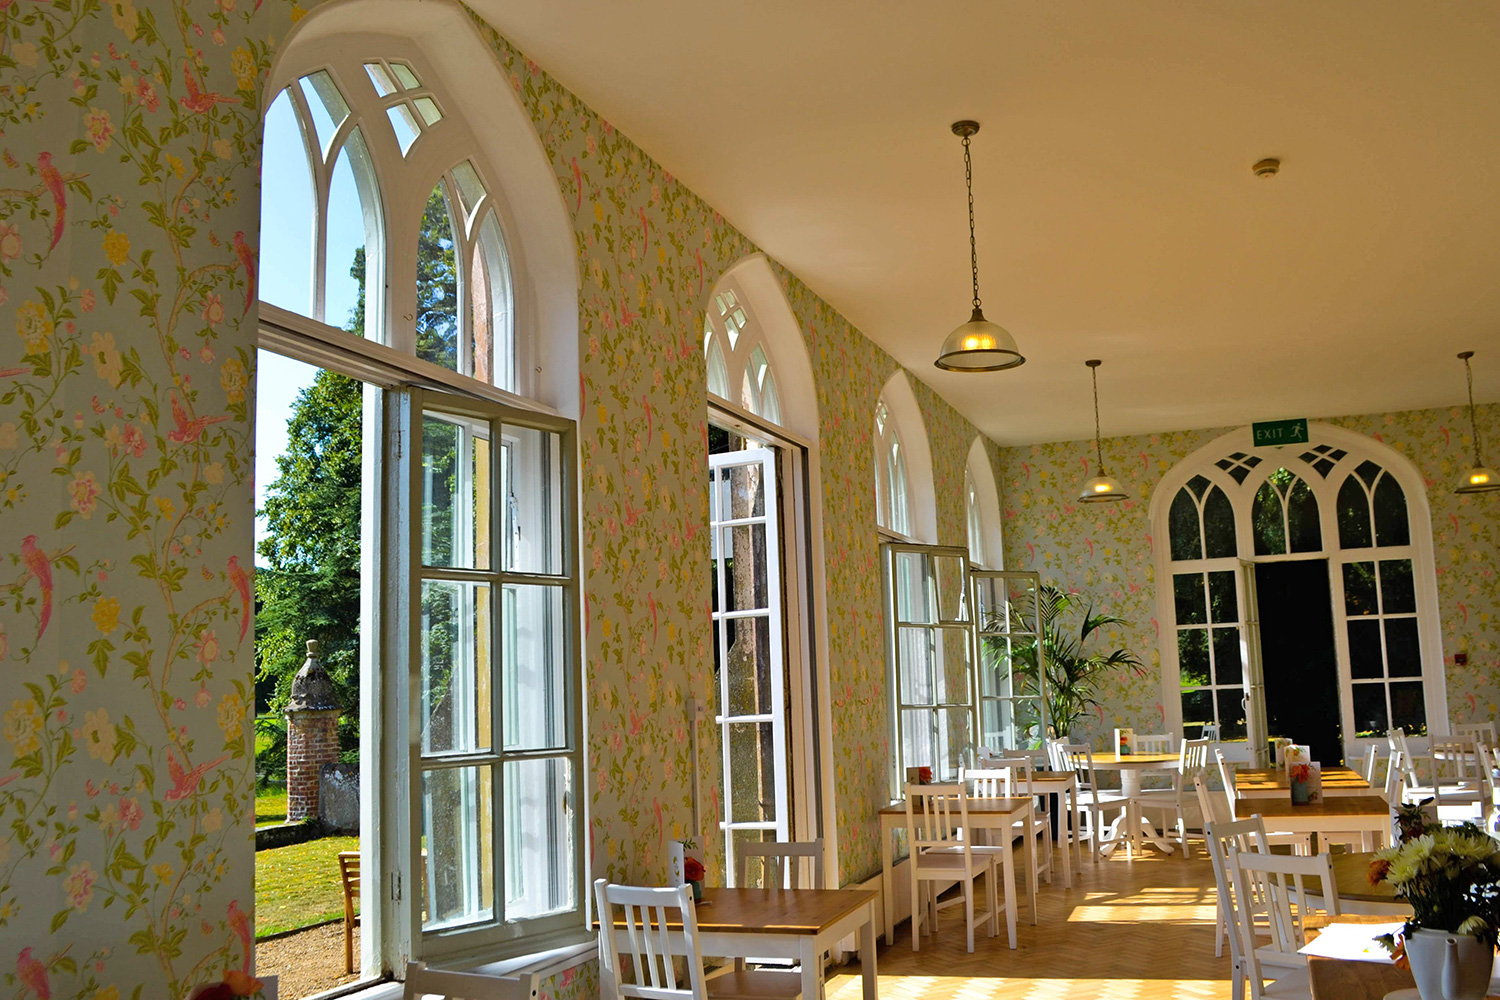 Inside The Orangery.